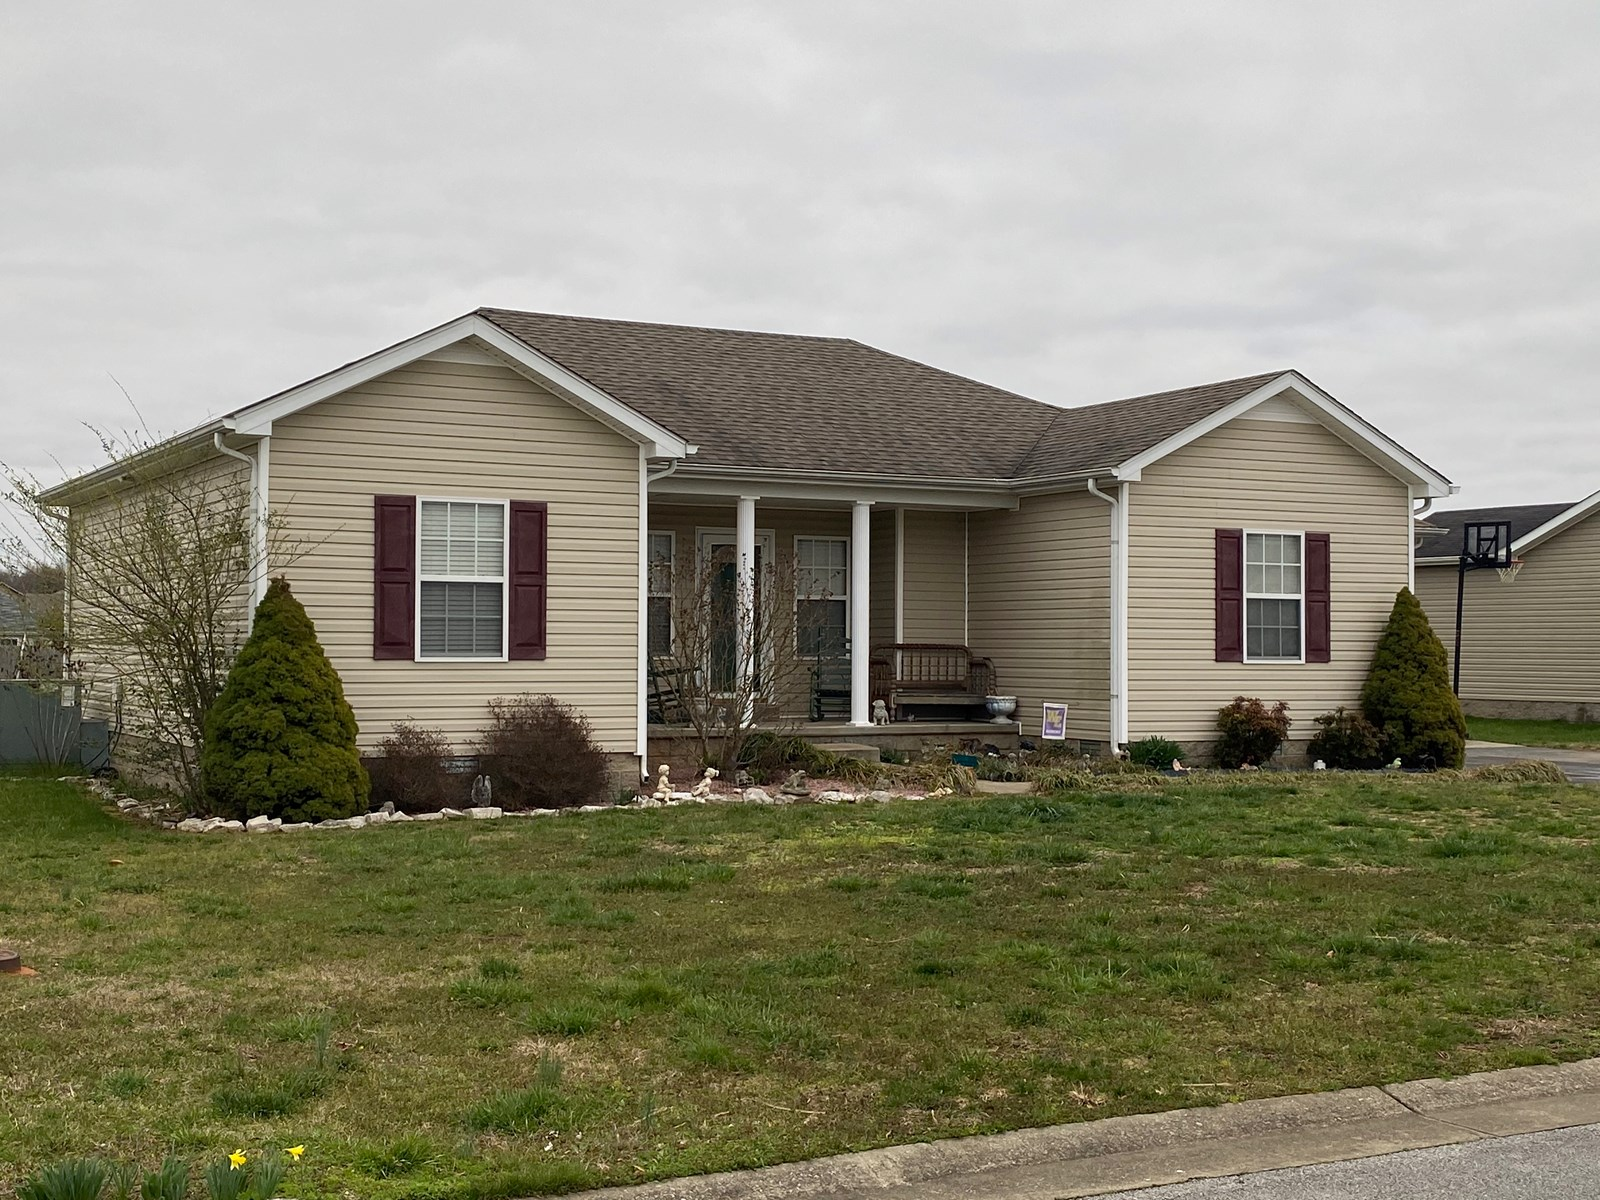 3 Bedroom 2 Bath home for sale near Bowling Green Kentucky